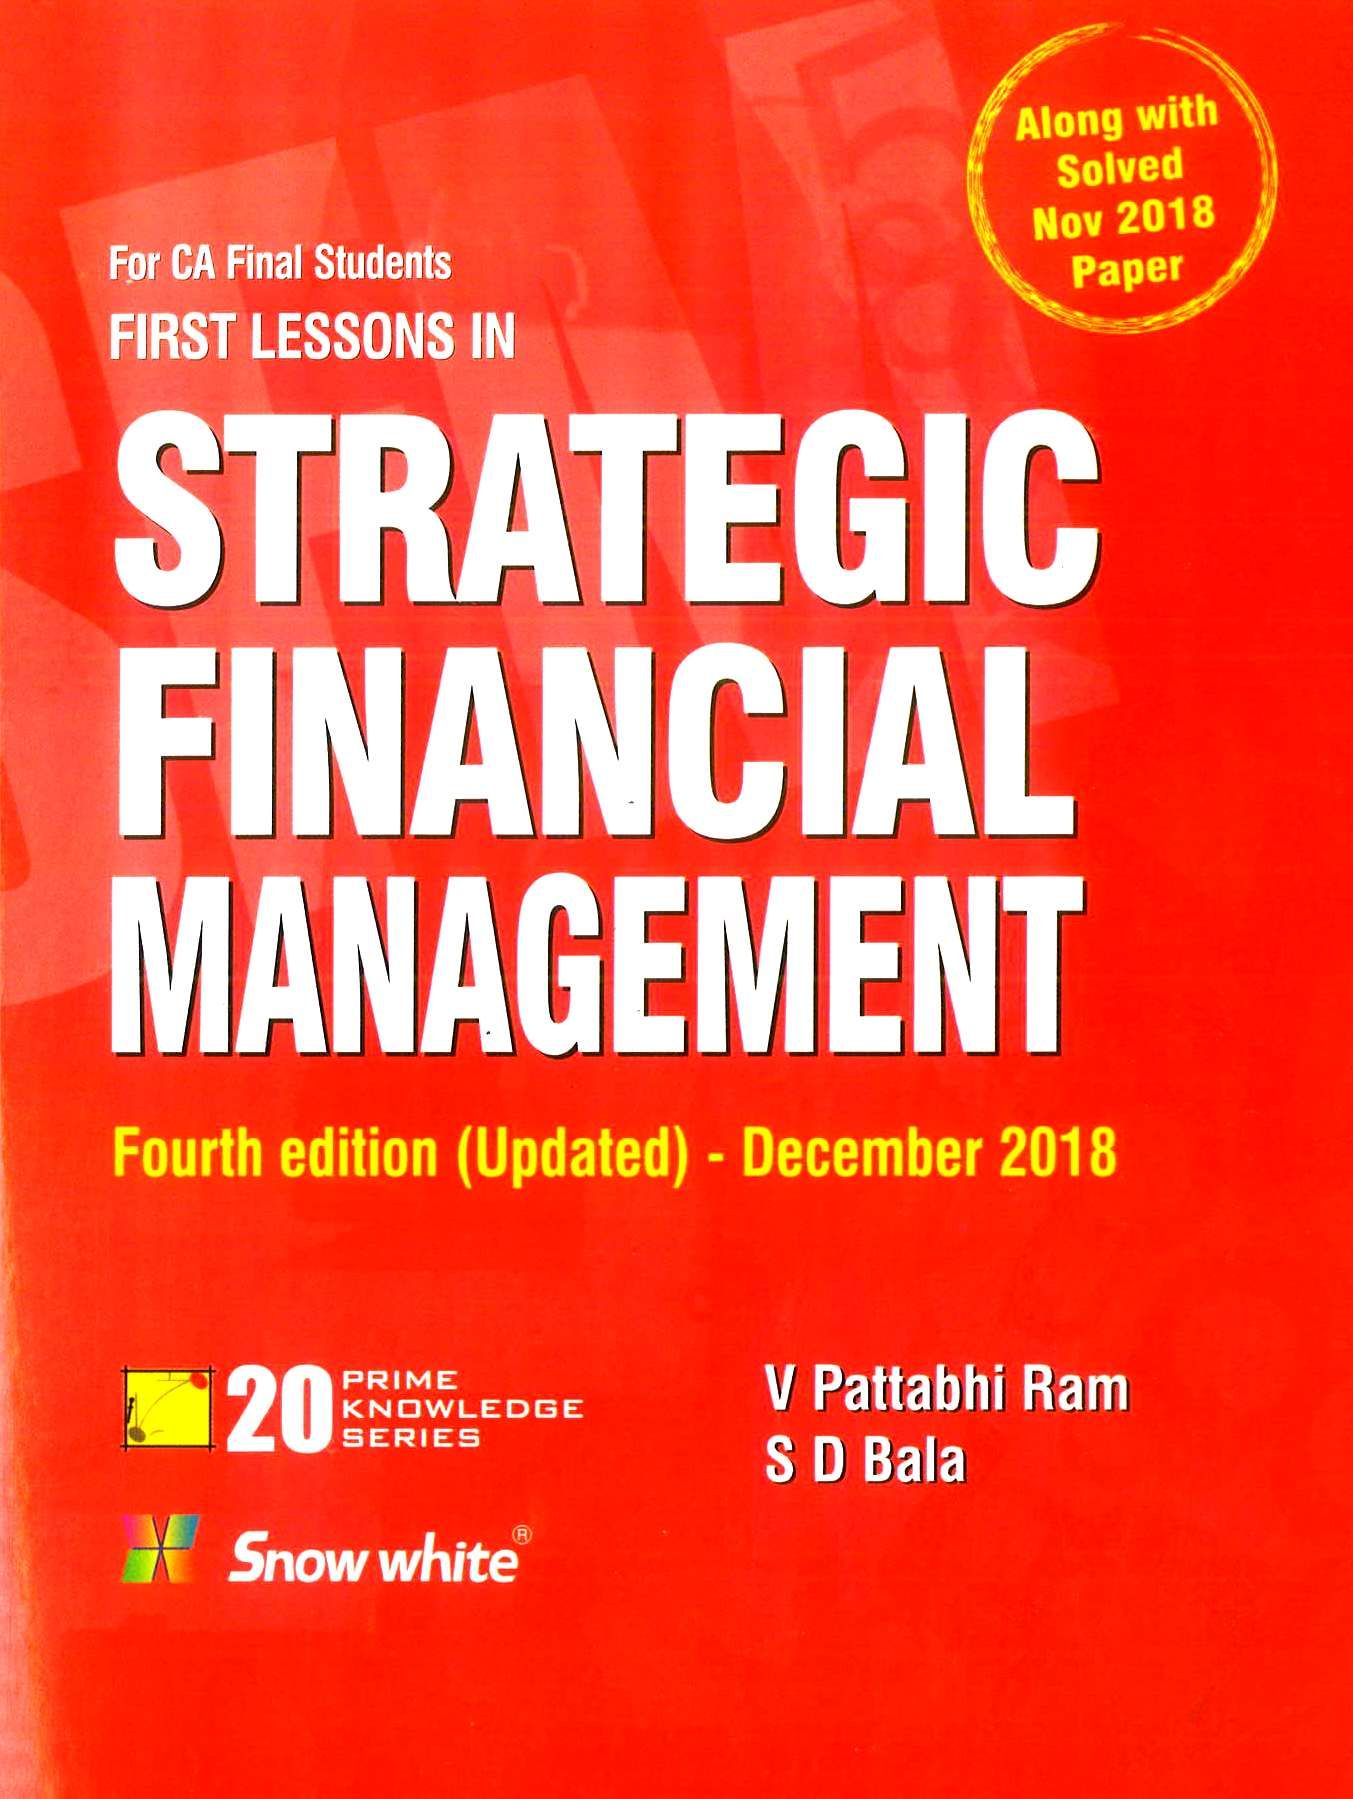 Snow White First Lessons in Strategic Financial Management for CA Final (Old Syllabus) by V Pattabhi Ram and S D Bala edition July 2019 (Snow White Publishing) for May June 2020